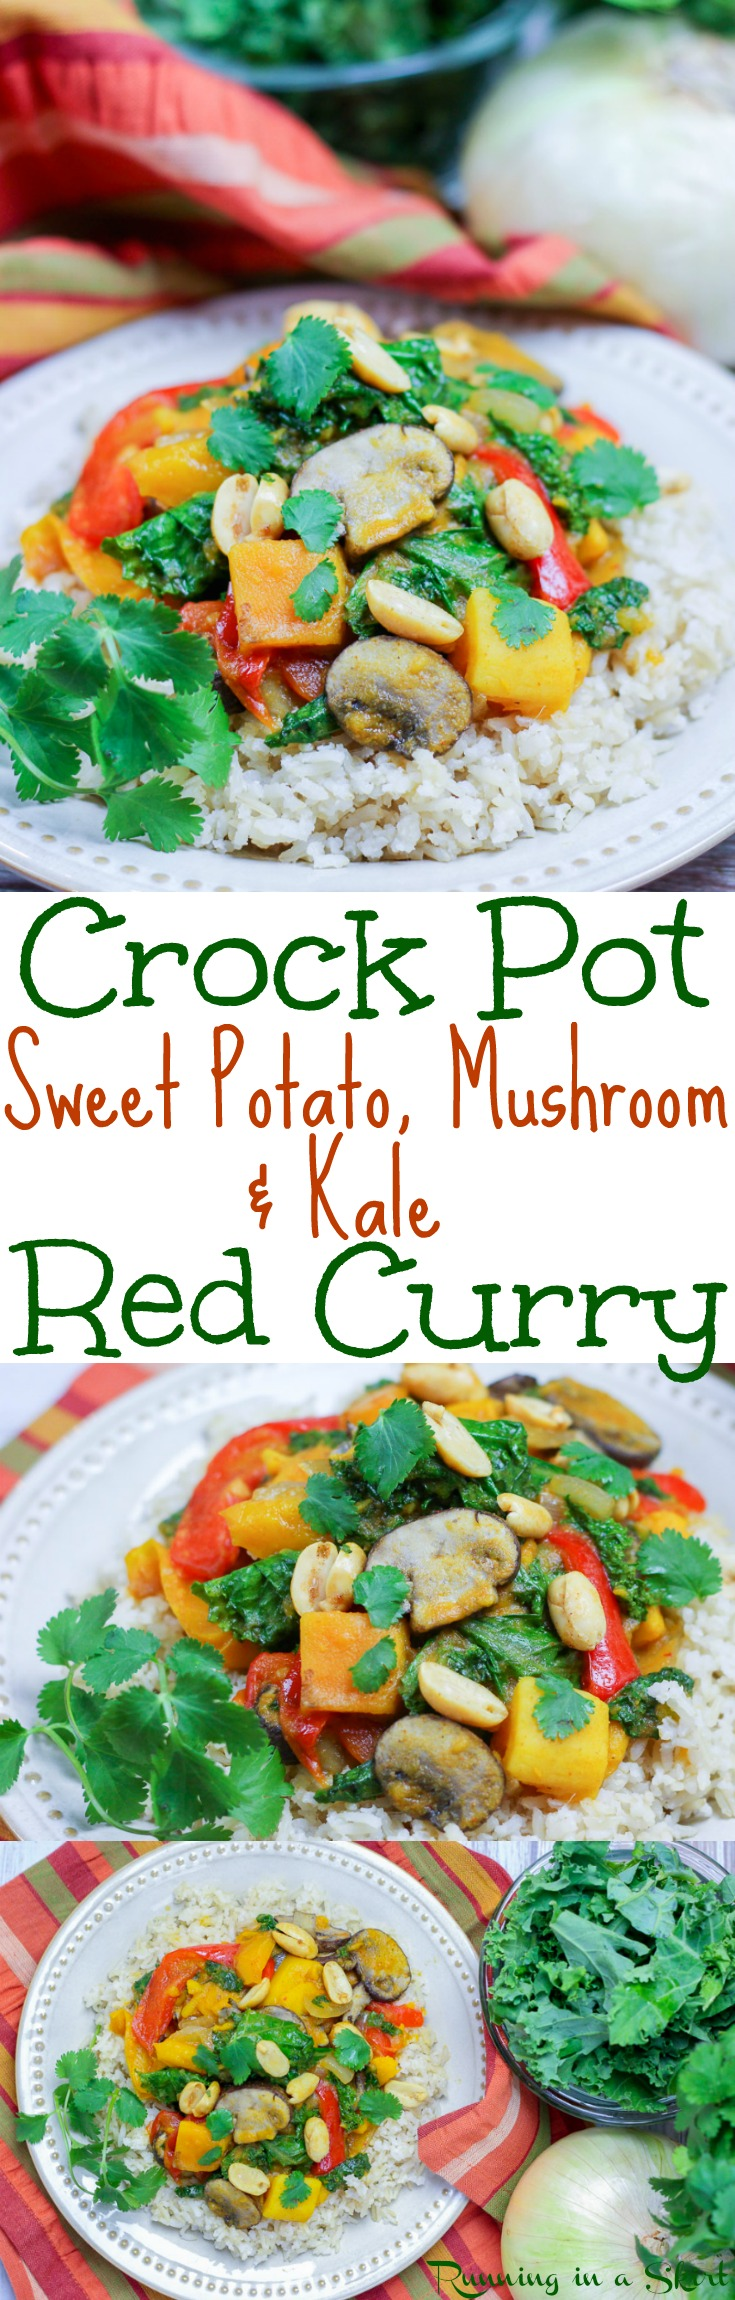 Vegetarian Crock Pot Curry recipe - with coconut milk, sweet potato, mushrooms & kale.  Thai takeout flavors at home in a crockpot meals - easy, healthy and perfect for families.  Simple, clean eating and low carb without the rice. Great for vegans and gluten free. / Running in a Skirt